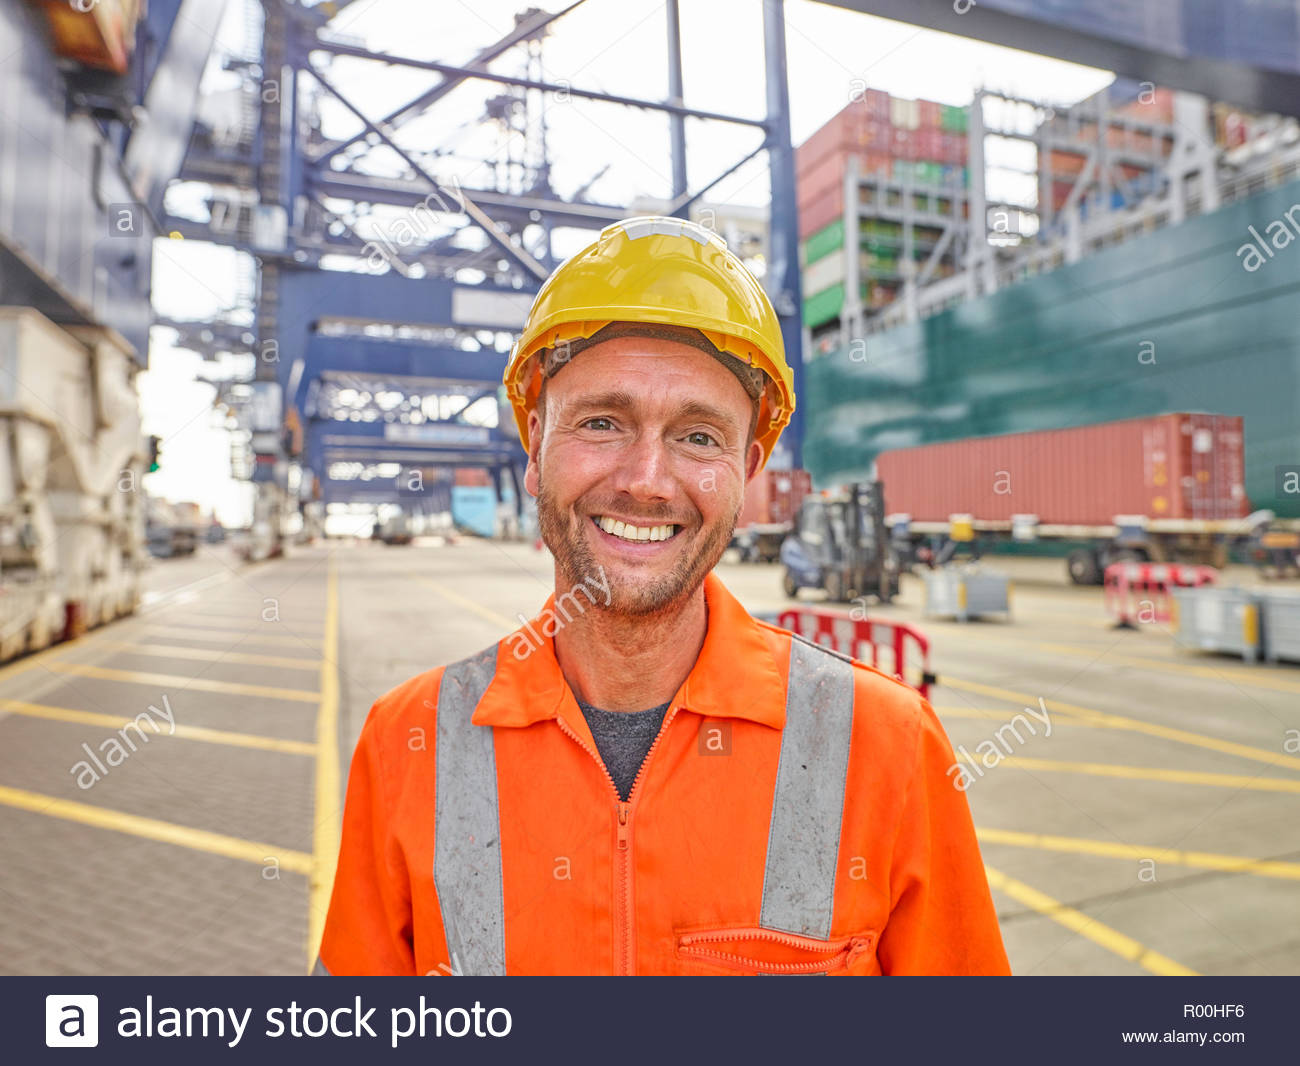 Smiling dock worker in reflective clothing and hard hat infront of container ship and cranes portrait - Stock Image